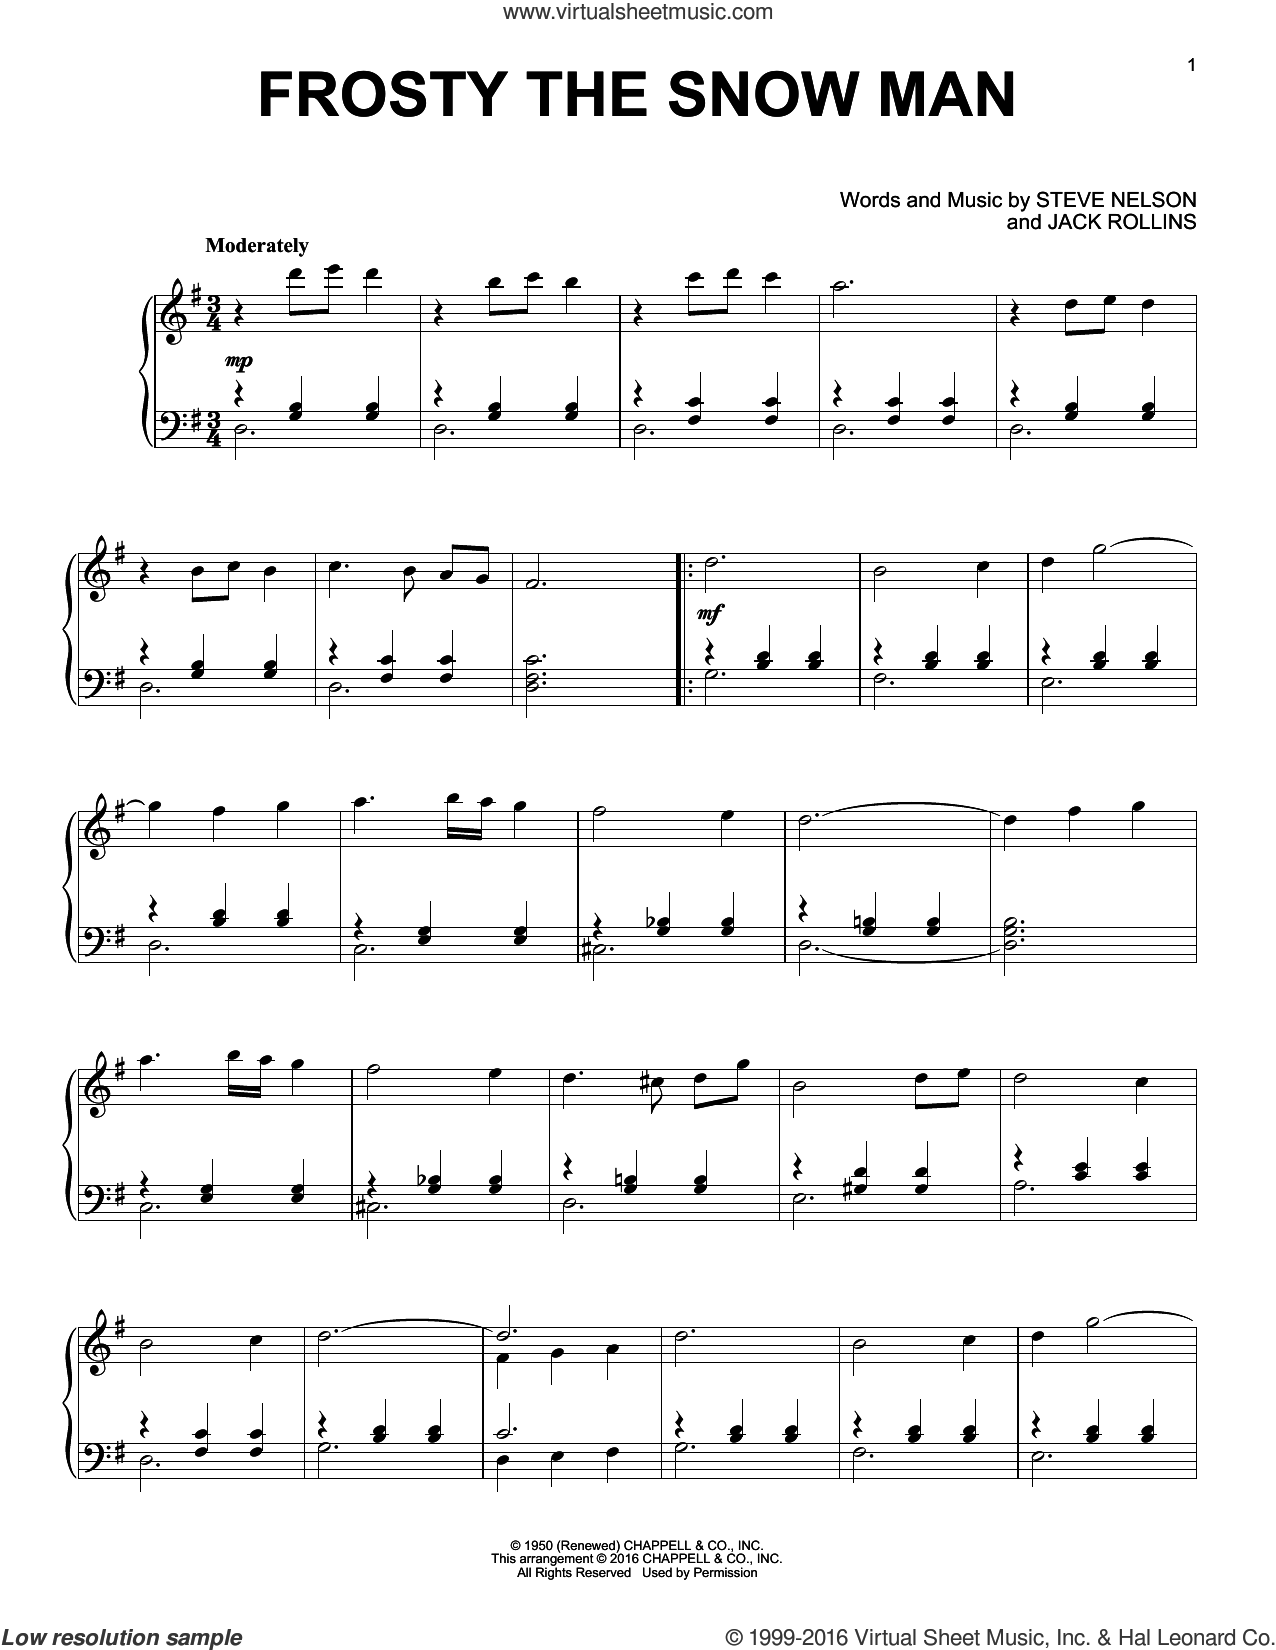 Frosty The Snow Man sheet music for piano solo by Gene Autry, Jack Rollins and Steve Nelson, intermediate skill level